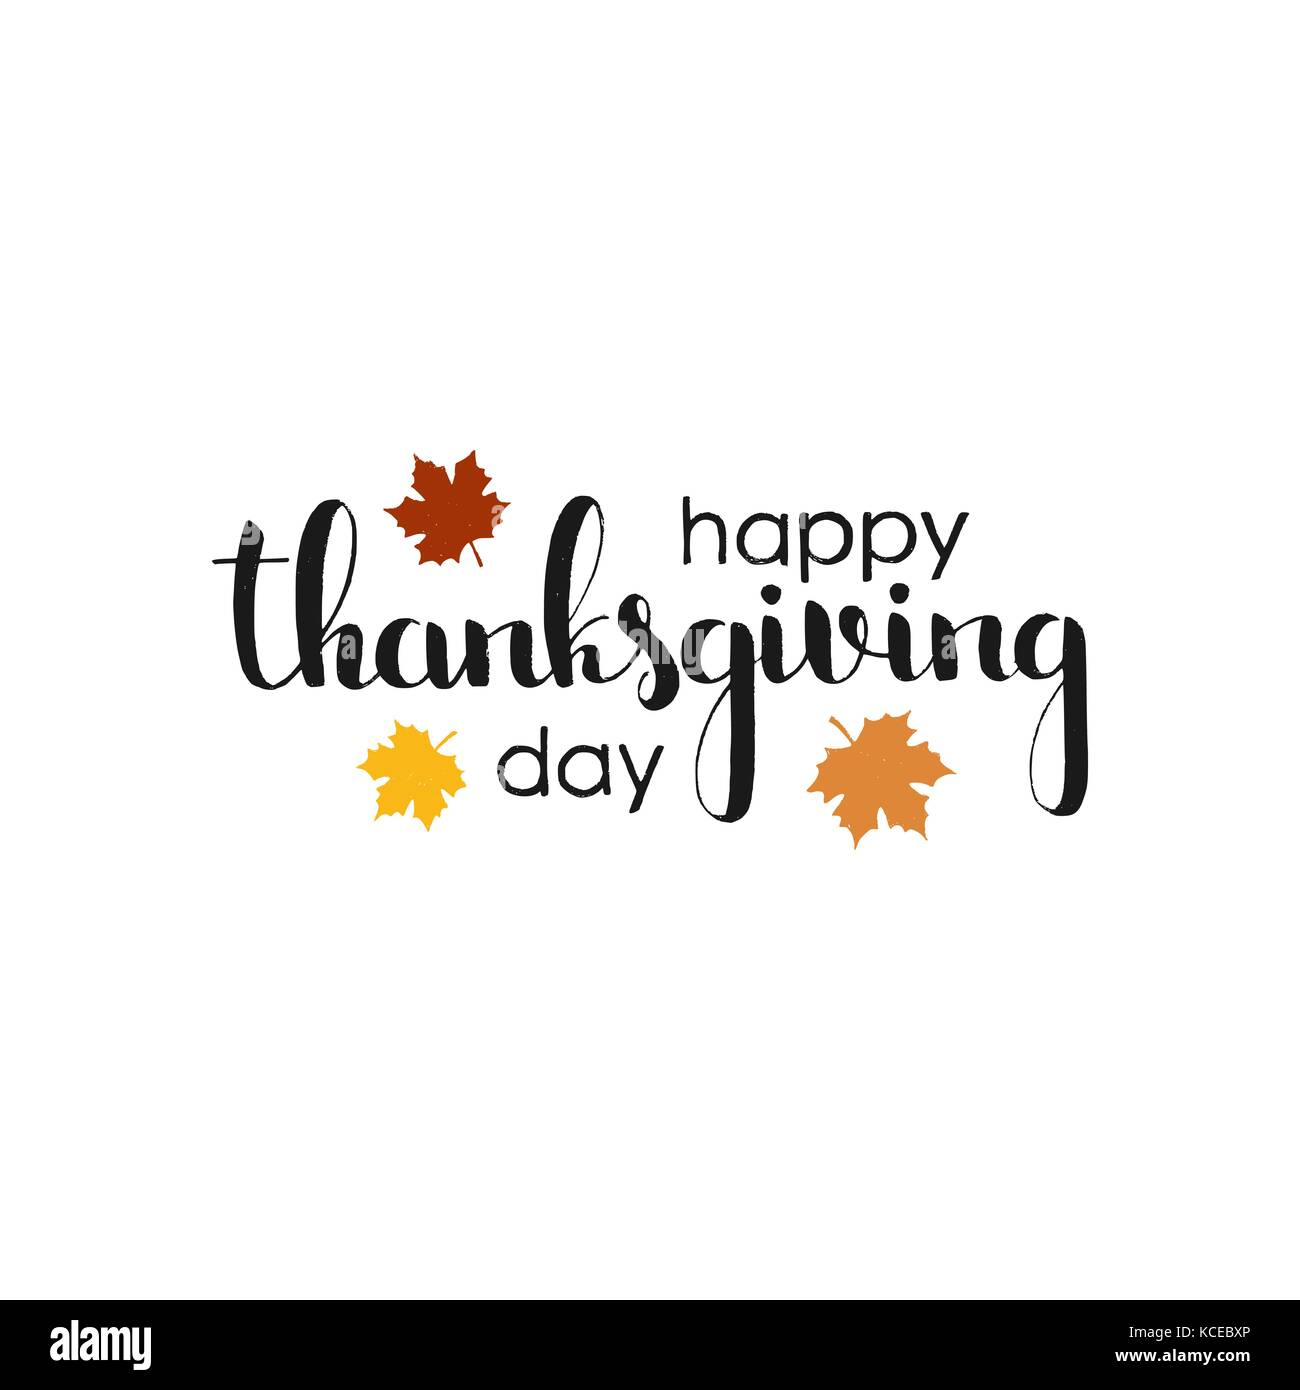 Happy Thanksgiving Day Handwritten Lettering Modern Vector Hand Drawn Calligraphy With Maple Leaves Isolated On White Background For Your Design